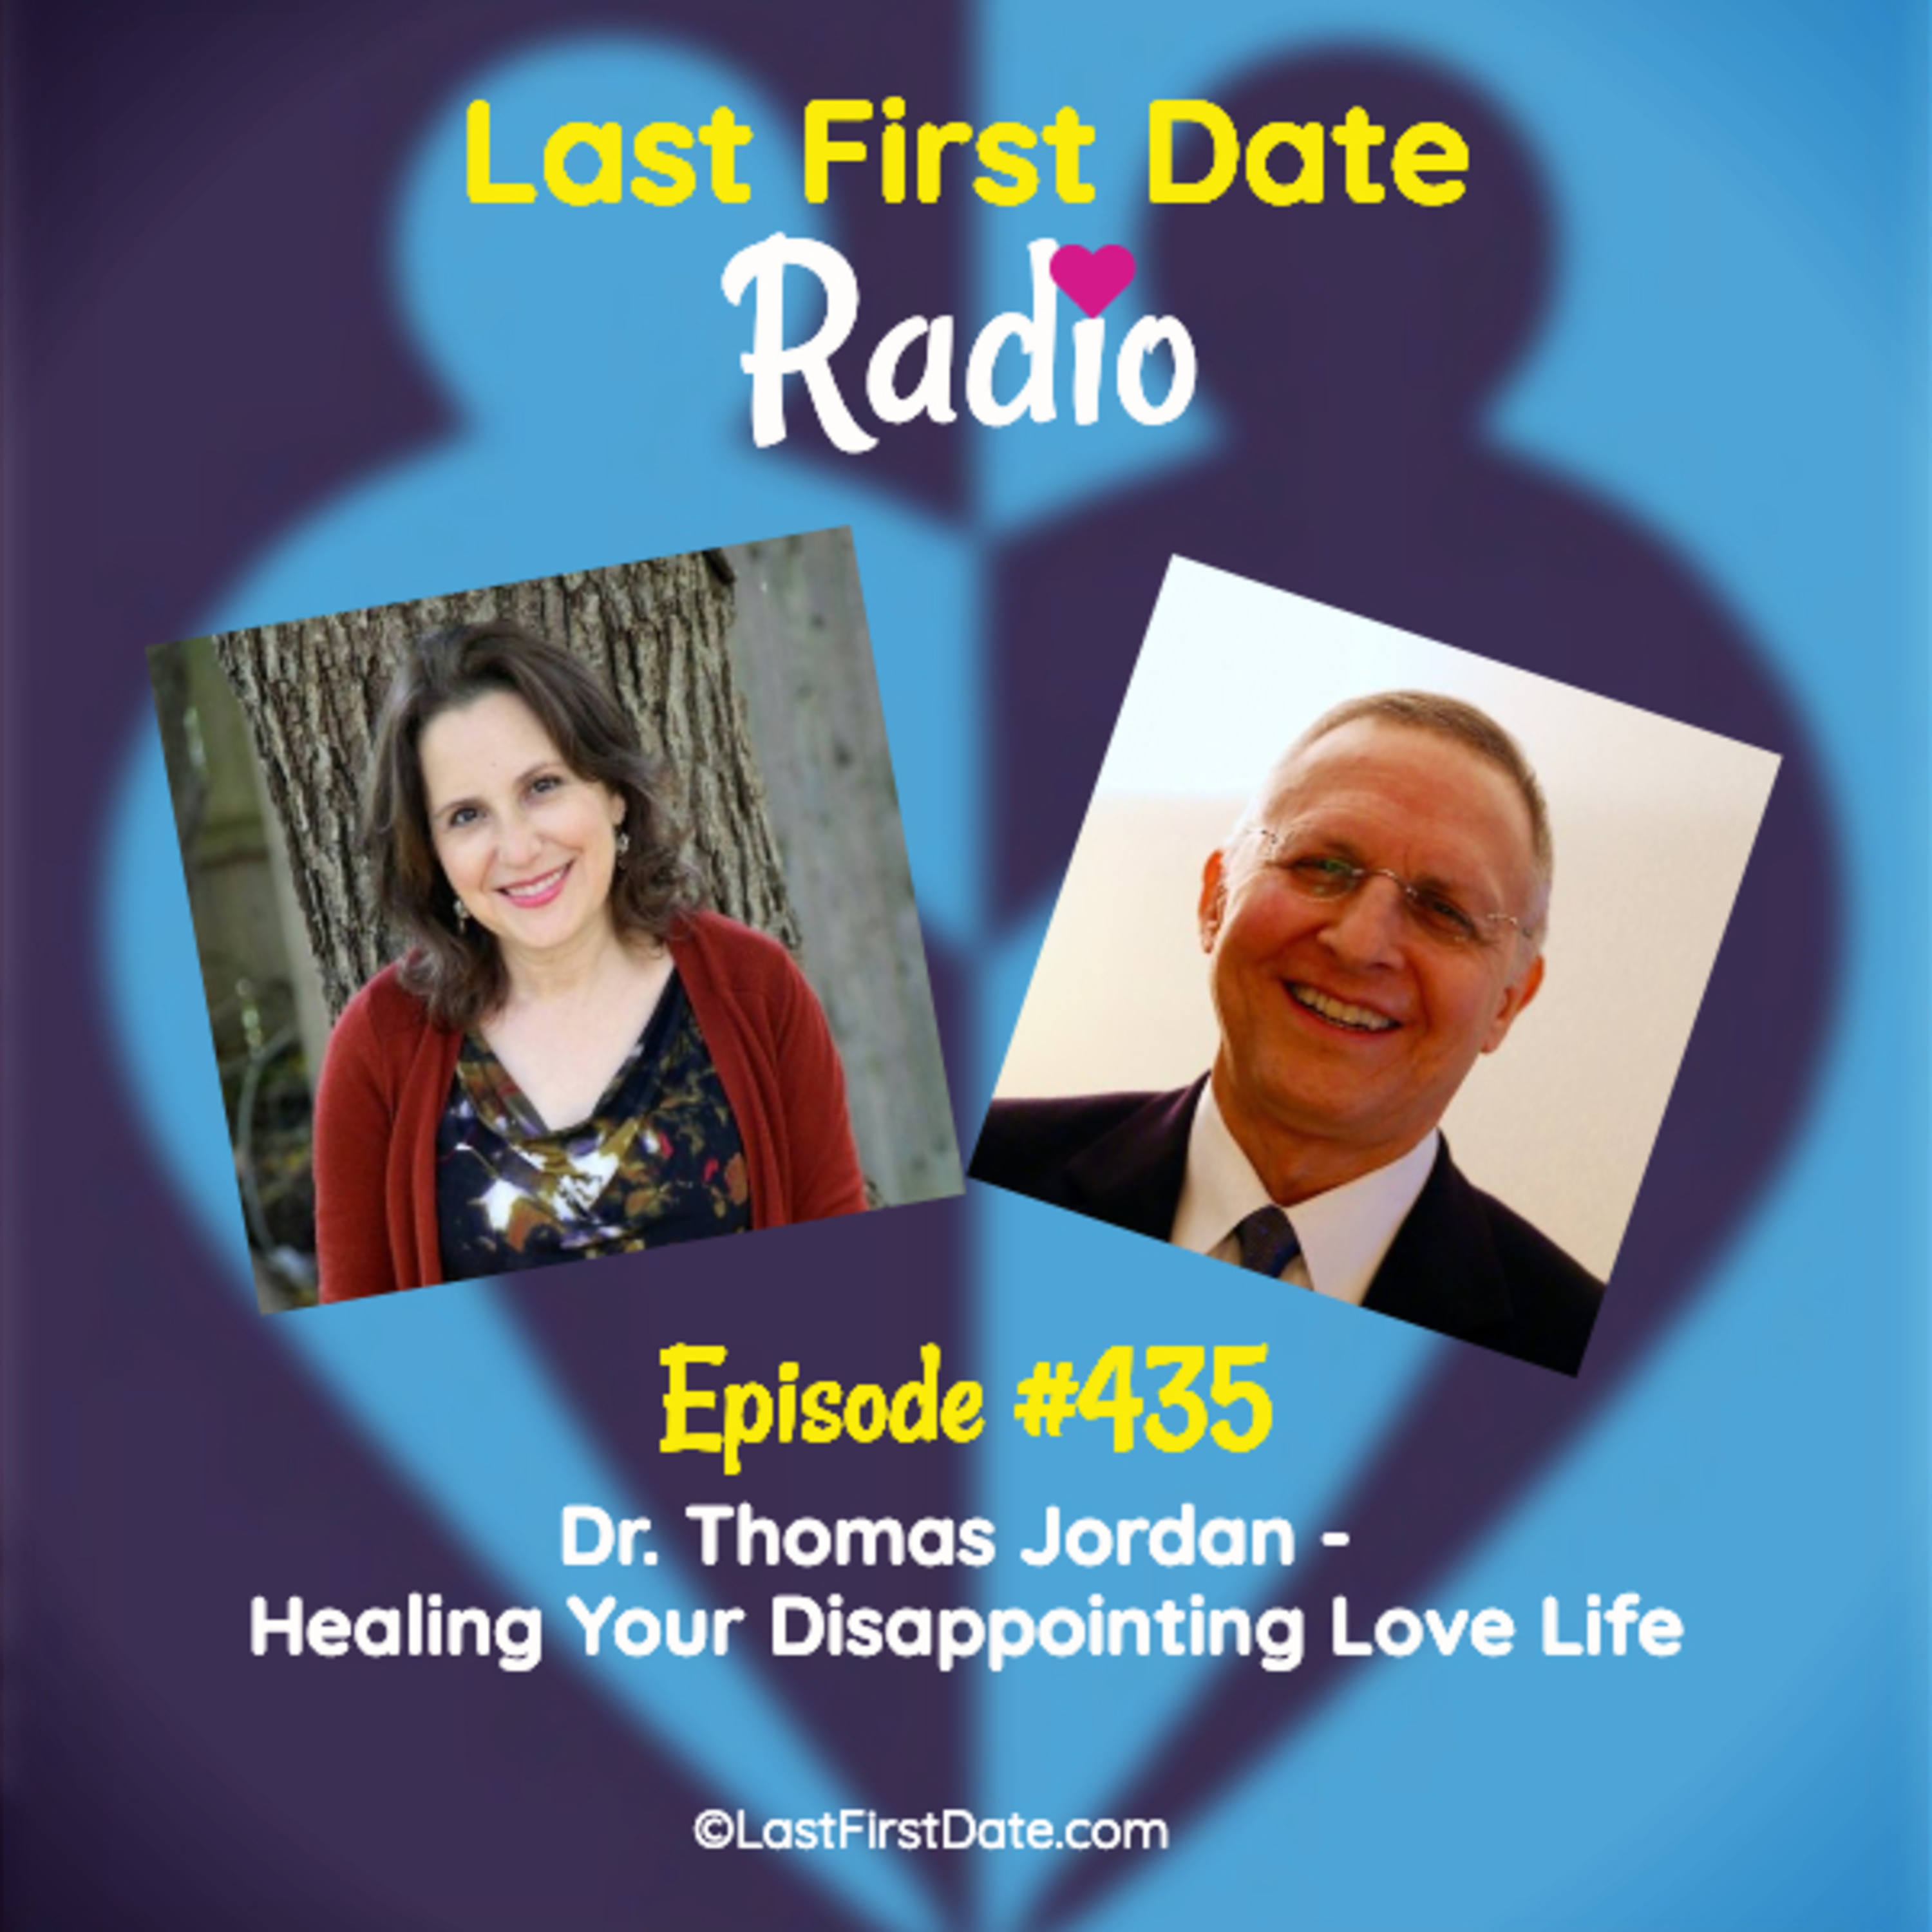 Last First Date Radio - EP 435: Dr. Thomas Jordan - Healing Your Disappointing Love Life